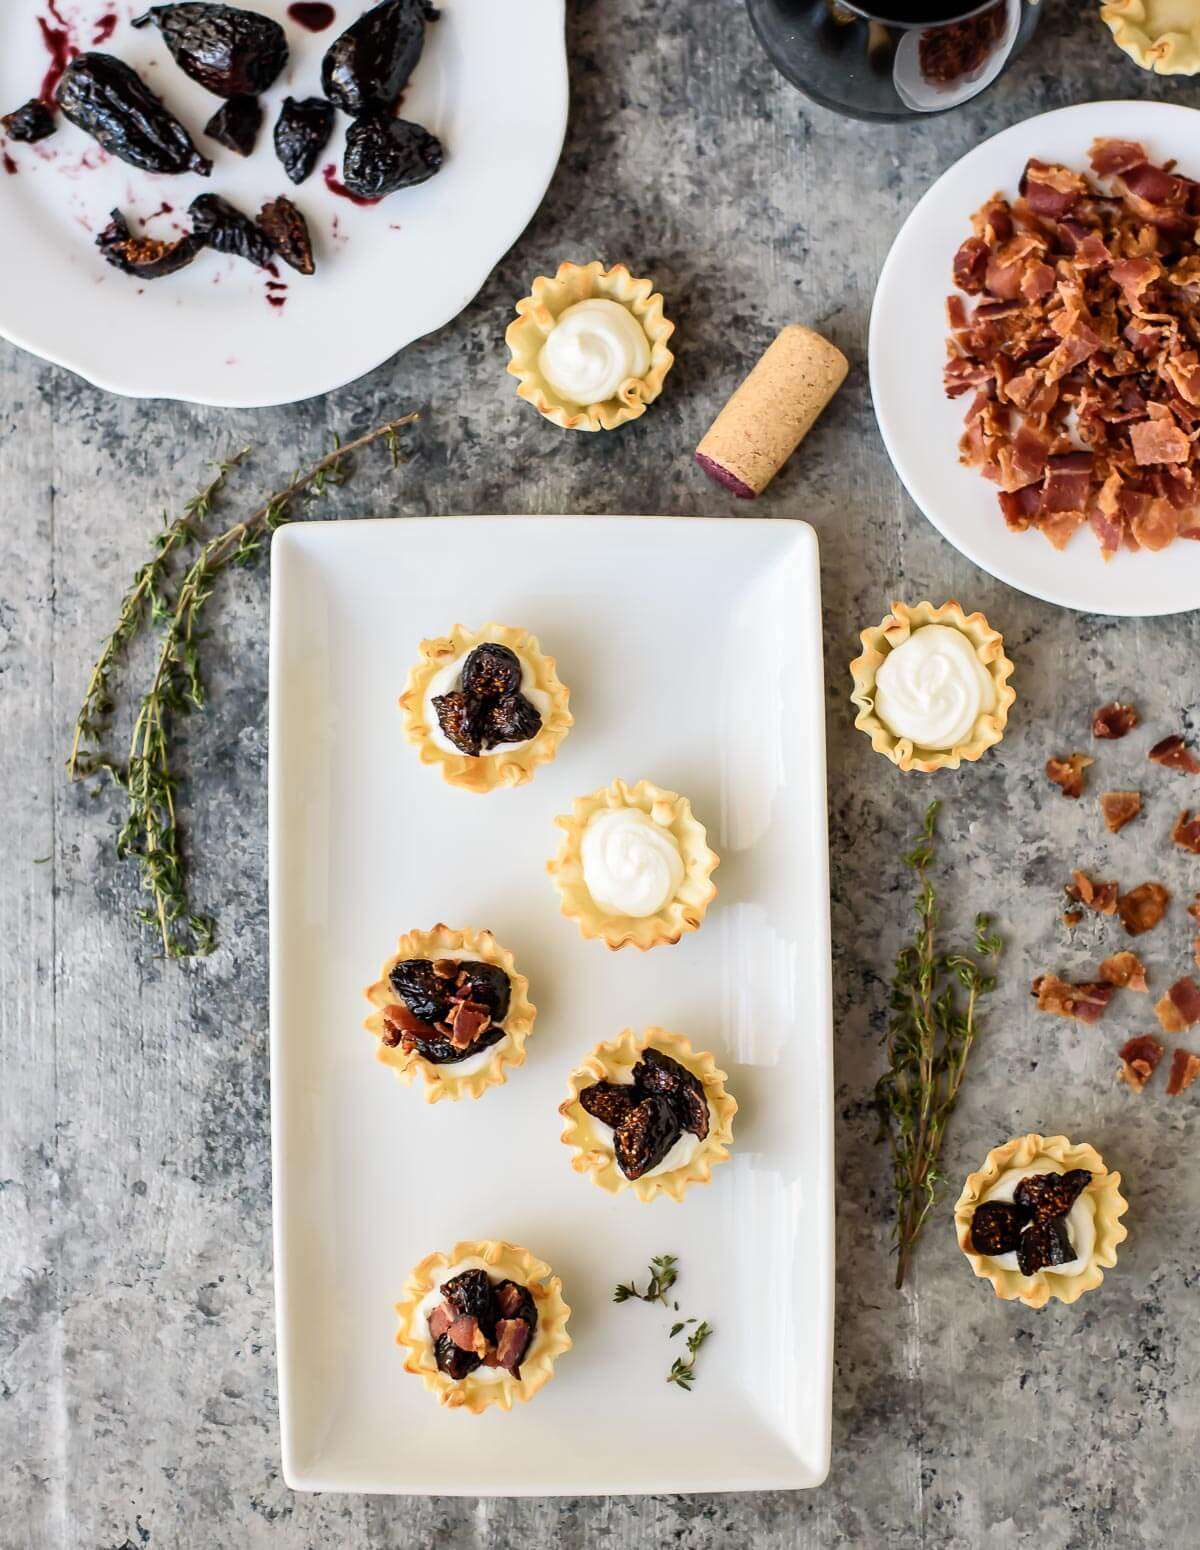 Get the full recipe here:  Well Plated's mini phyllo tarts